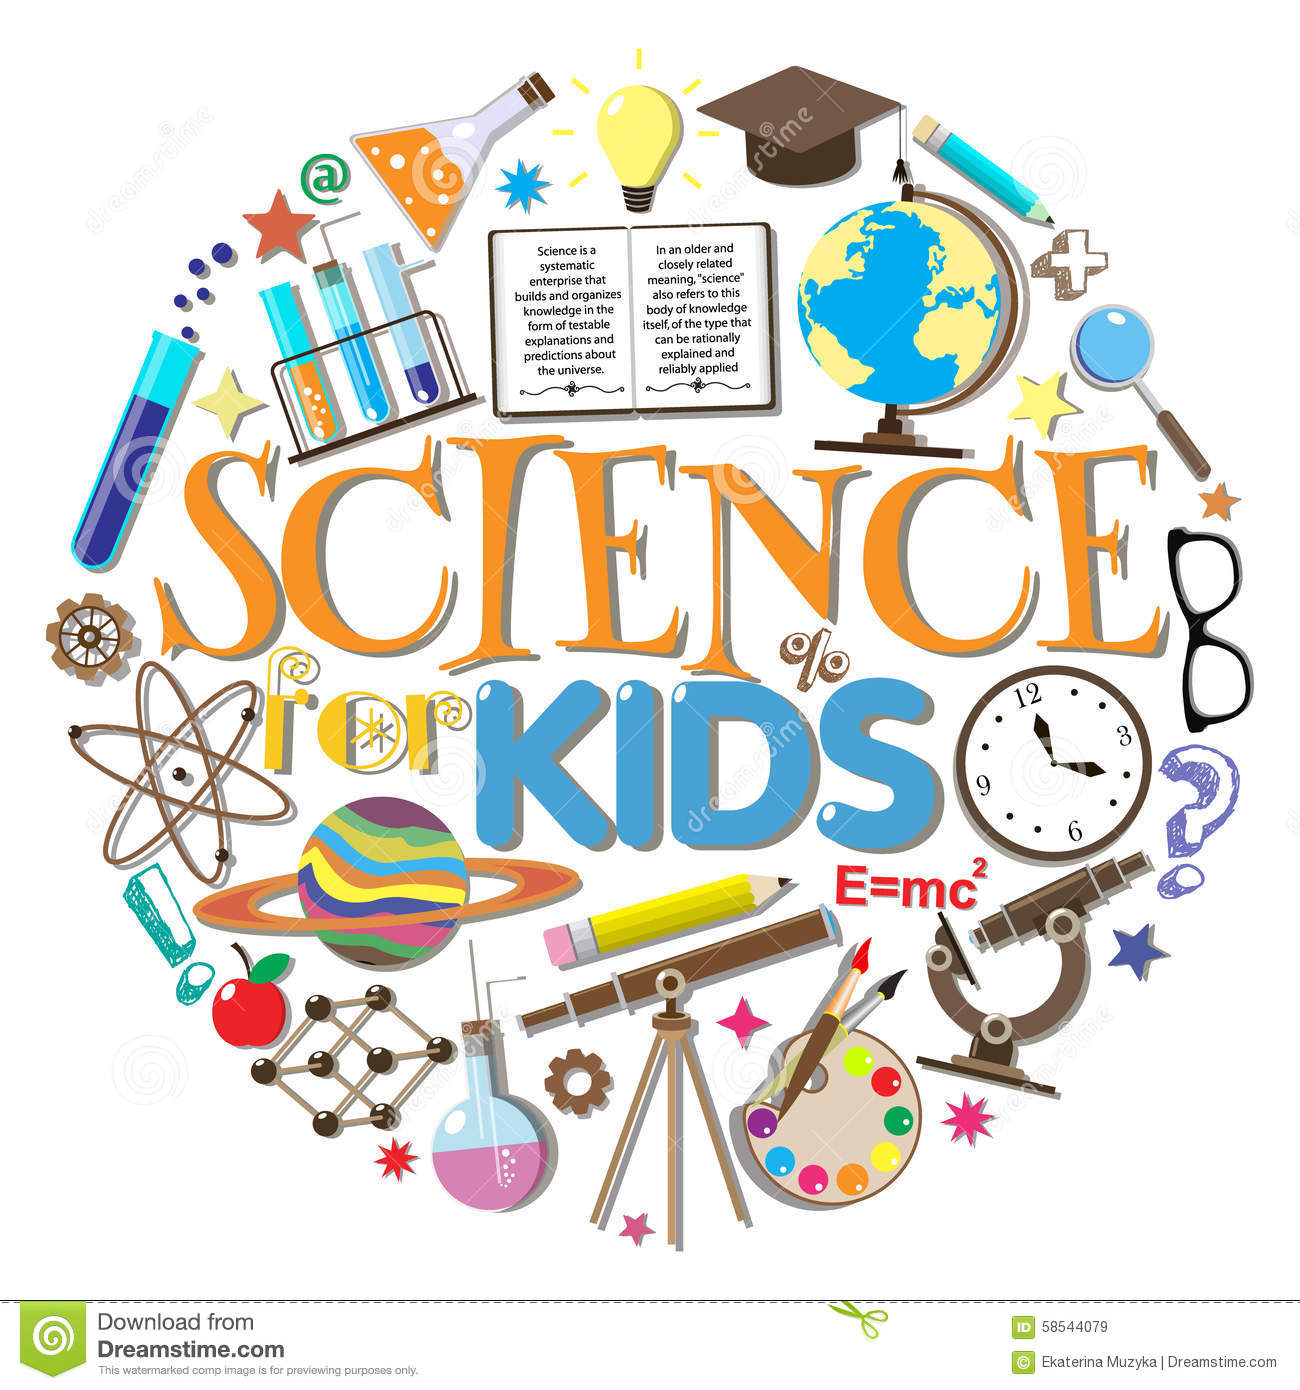 Science kids school symbols design elements white background vector